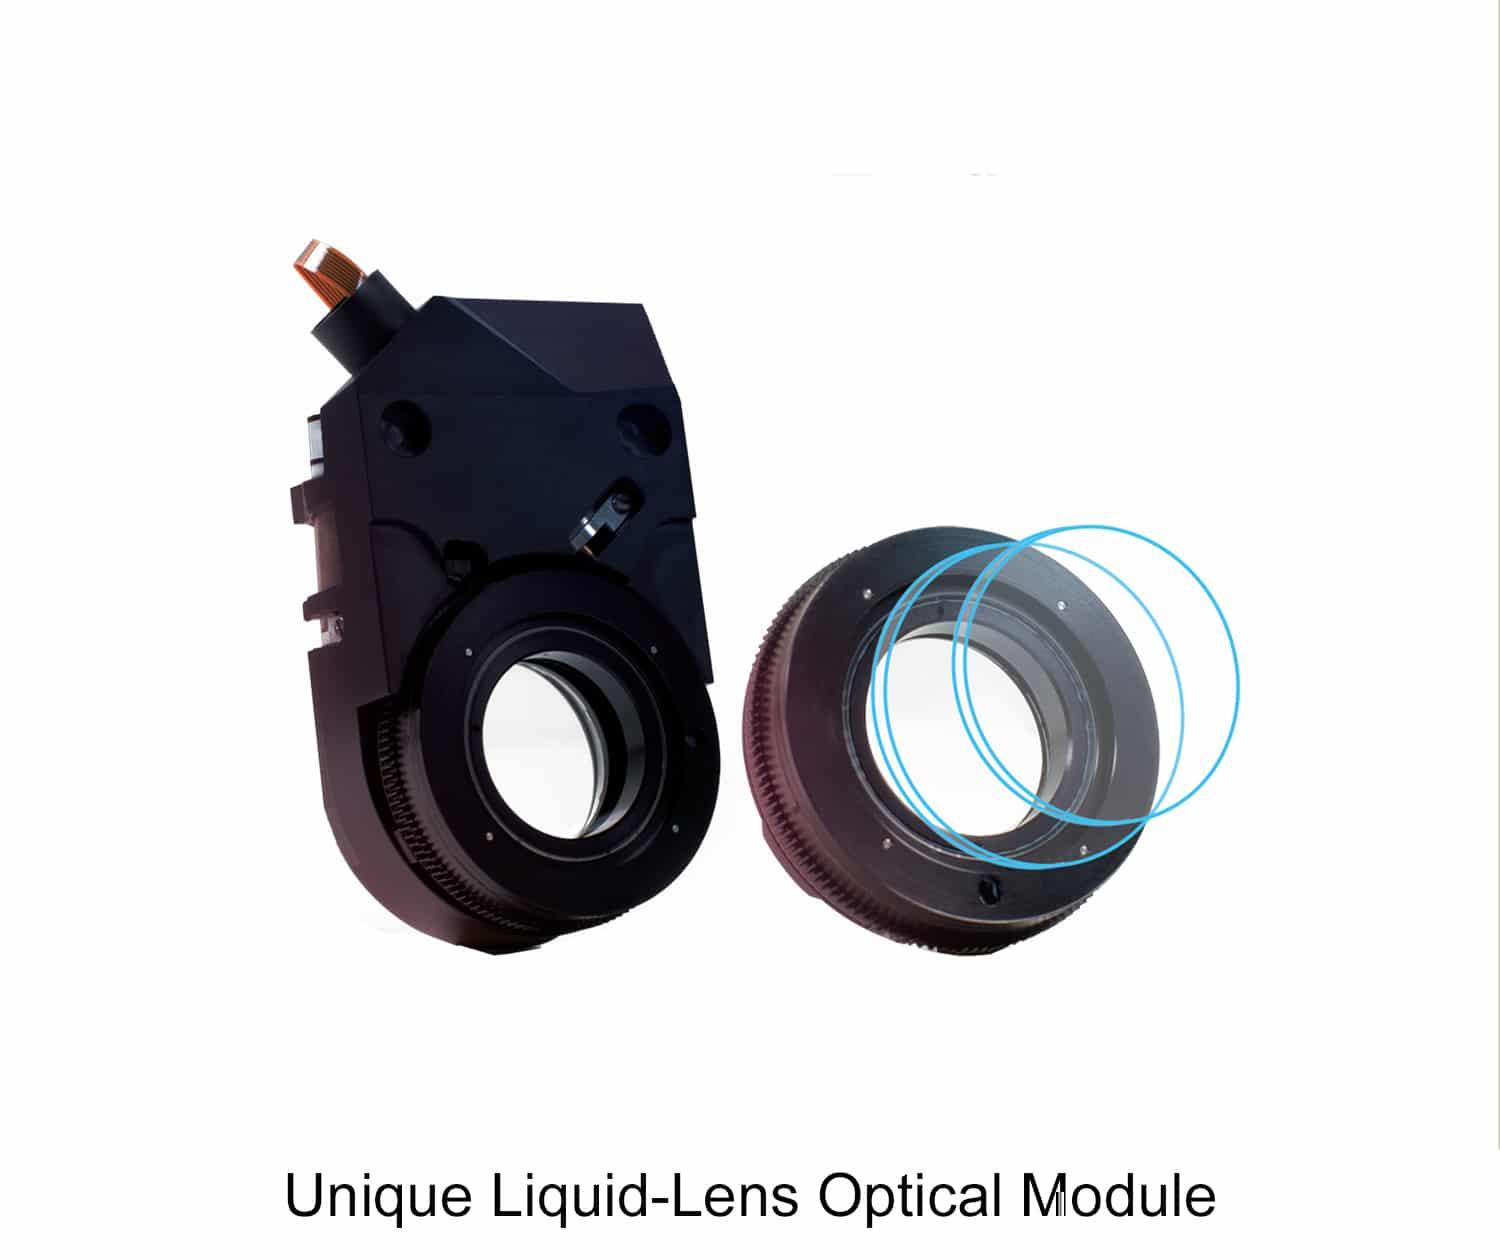 Unique Liquid-Lens Optical Module